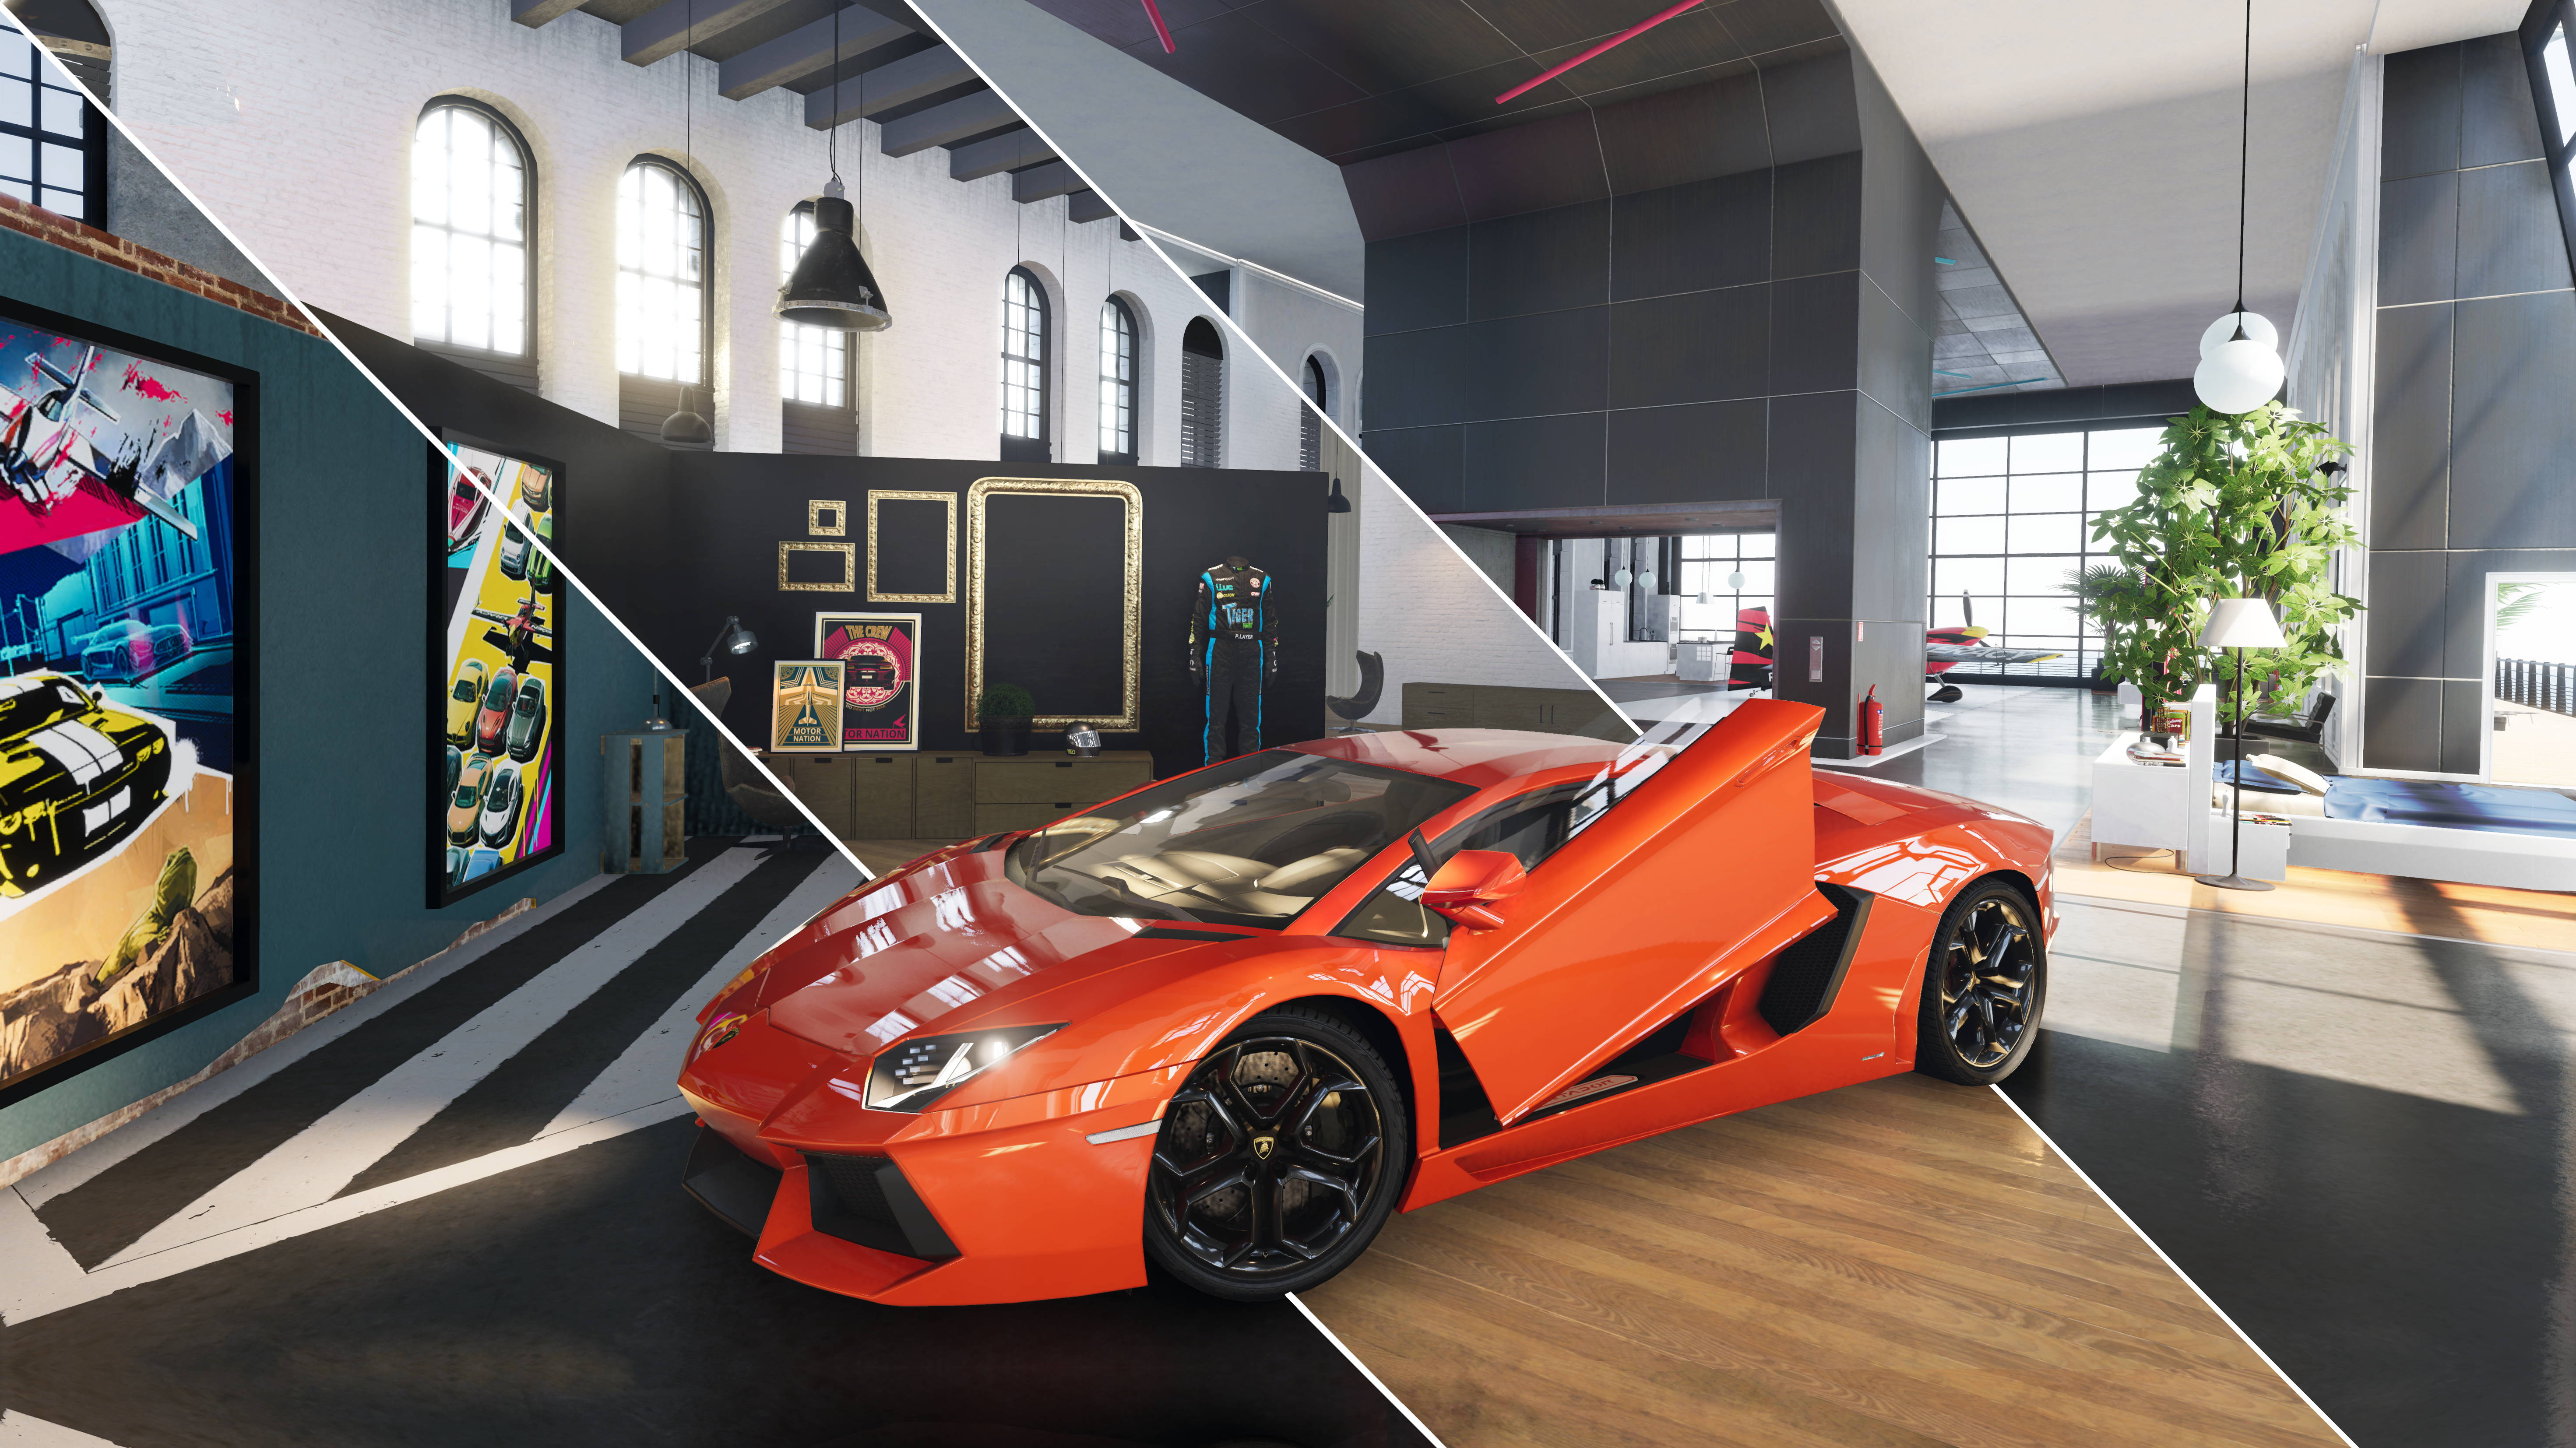 thecrew2_betaimages_0002